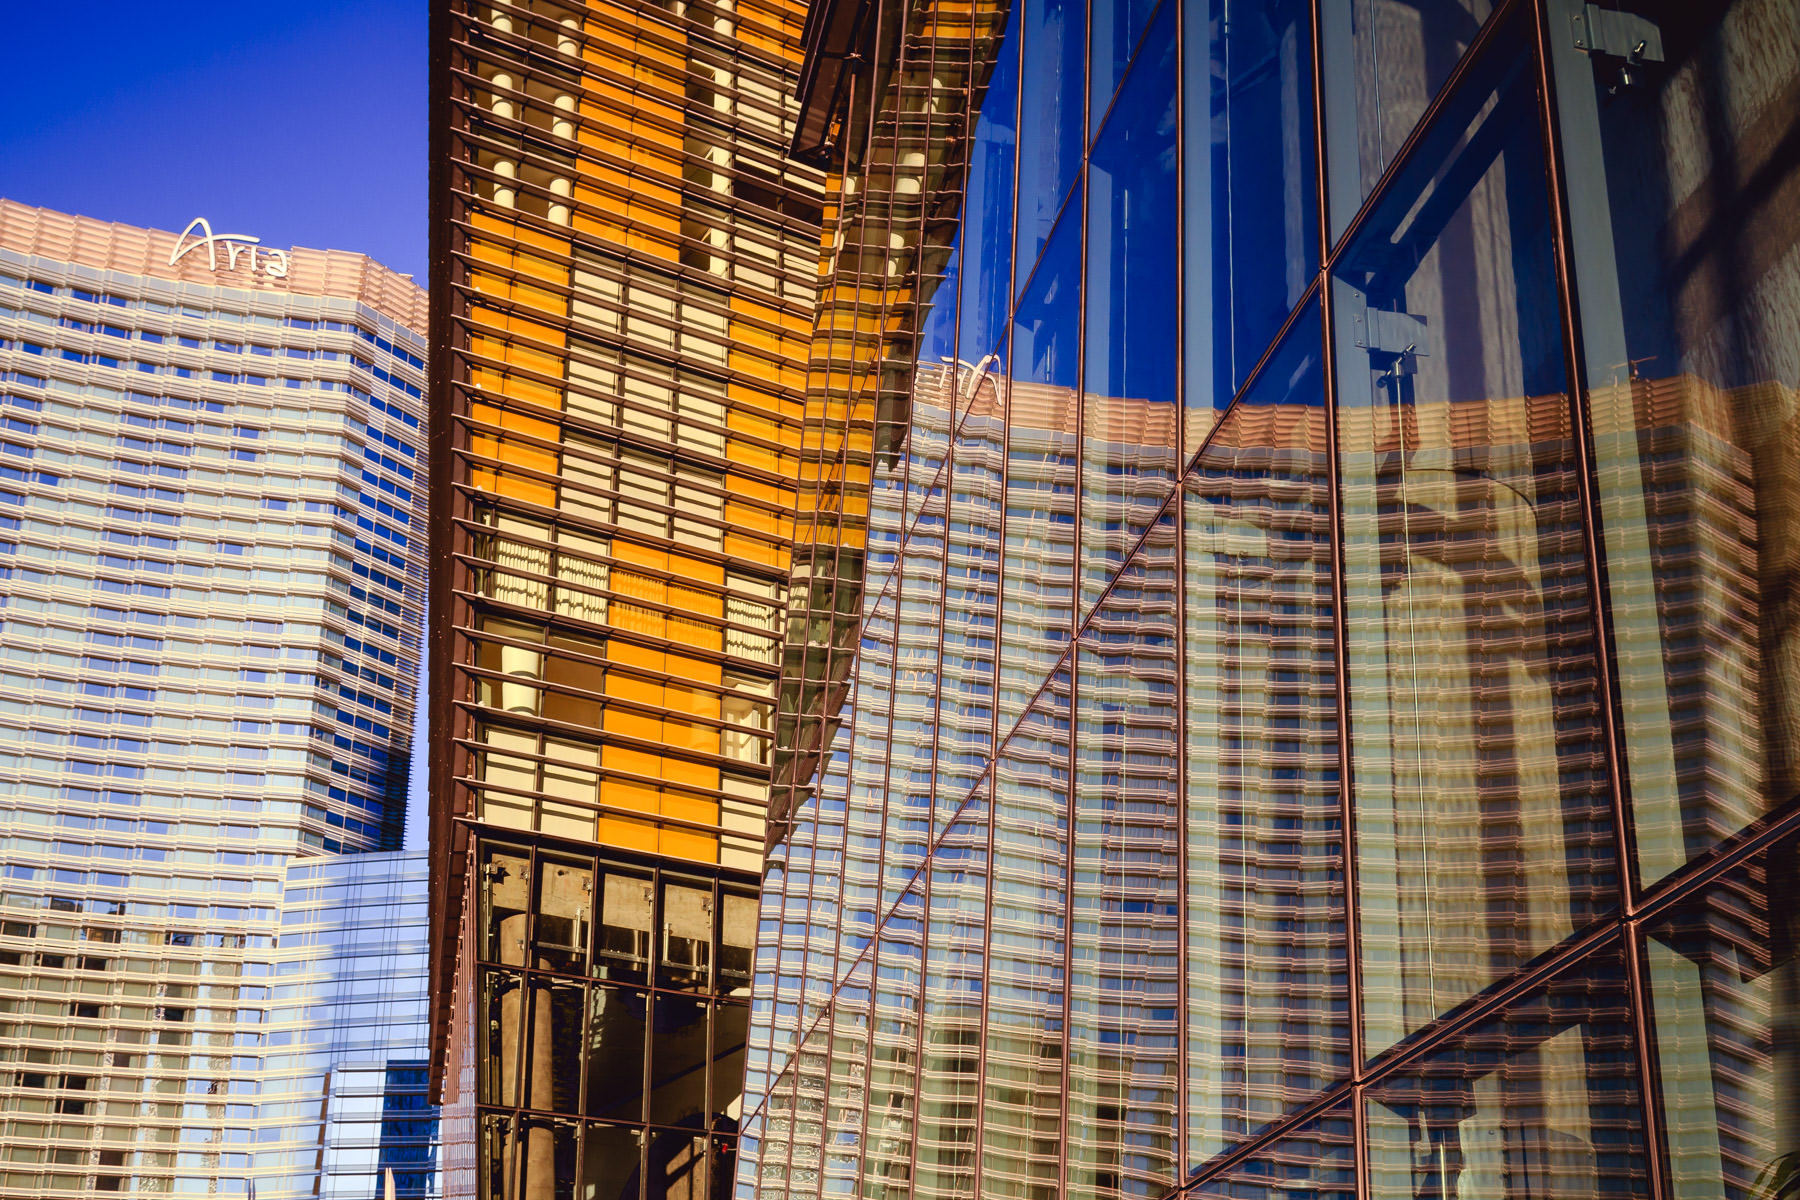 The Aria reflected in the lower level windows of the west Veer Tower, CityCenter, Las Vegas.